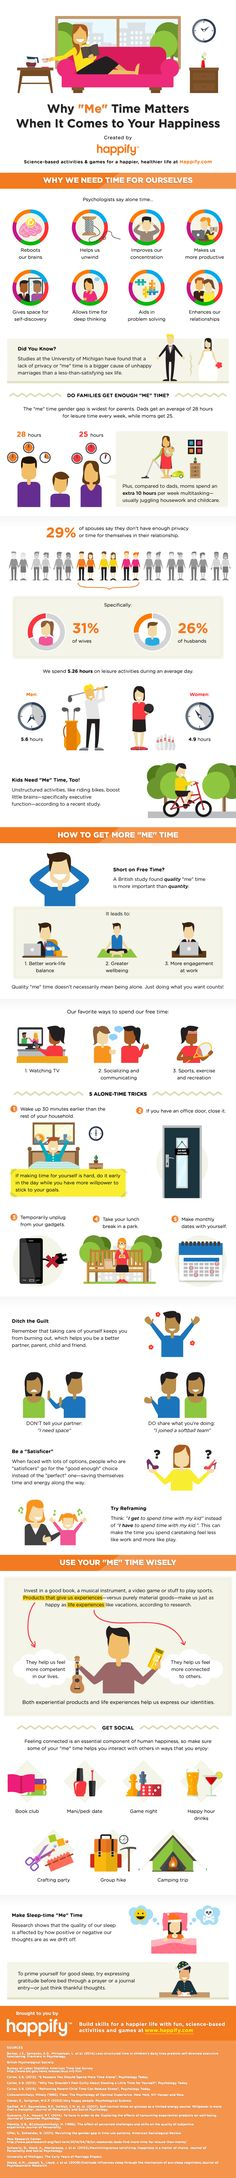 Parents, let this infographic inspire you to take time for yourselves amidst the chaos of family and work life—and justify why it's necessary.